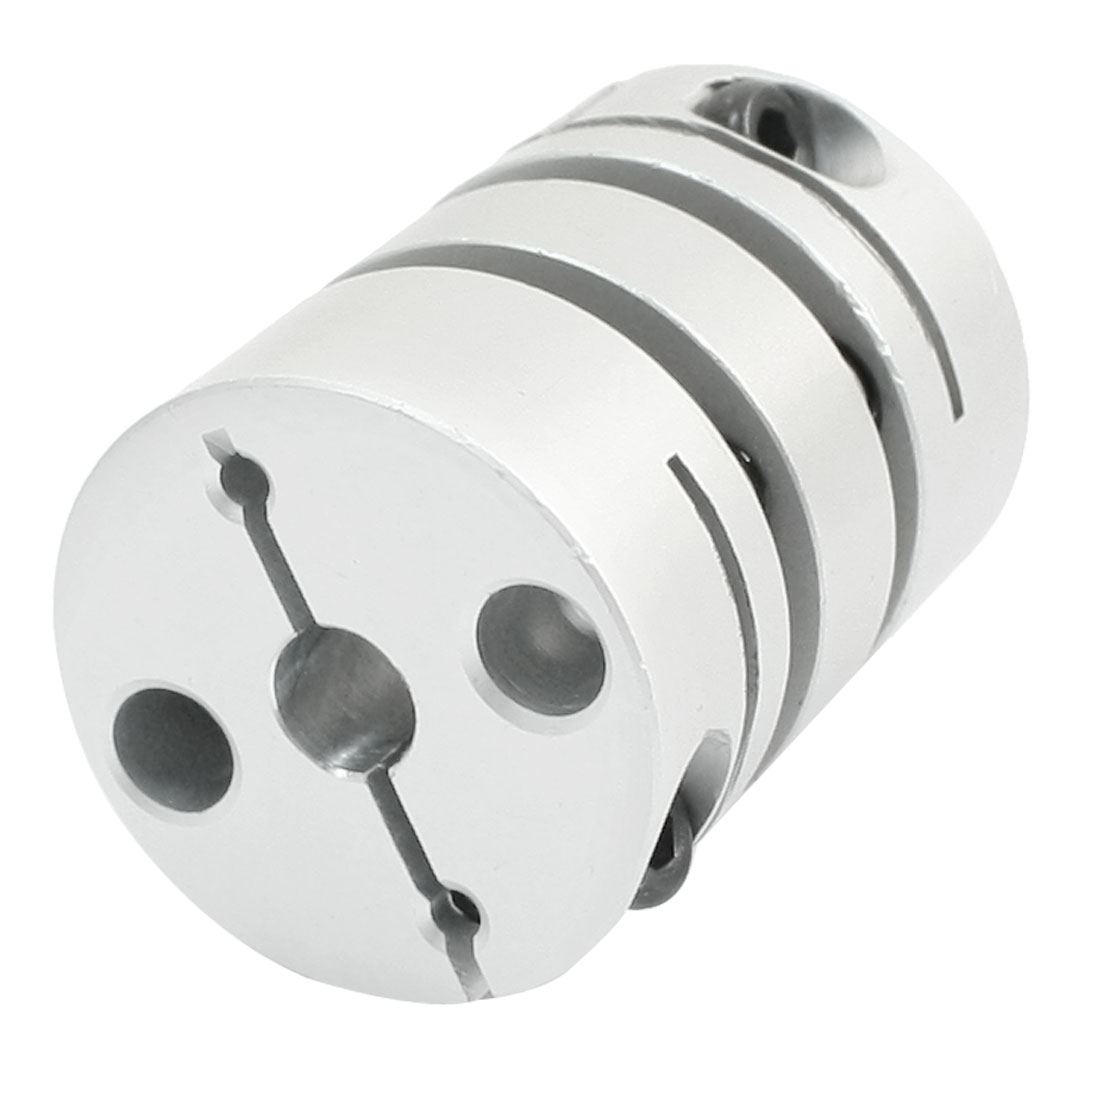 6mm to 6mm CNC Motor Jaw Shaft Dual Diaphrag Coupling Coupler Joint